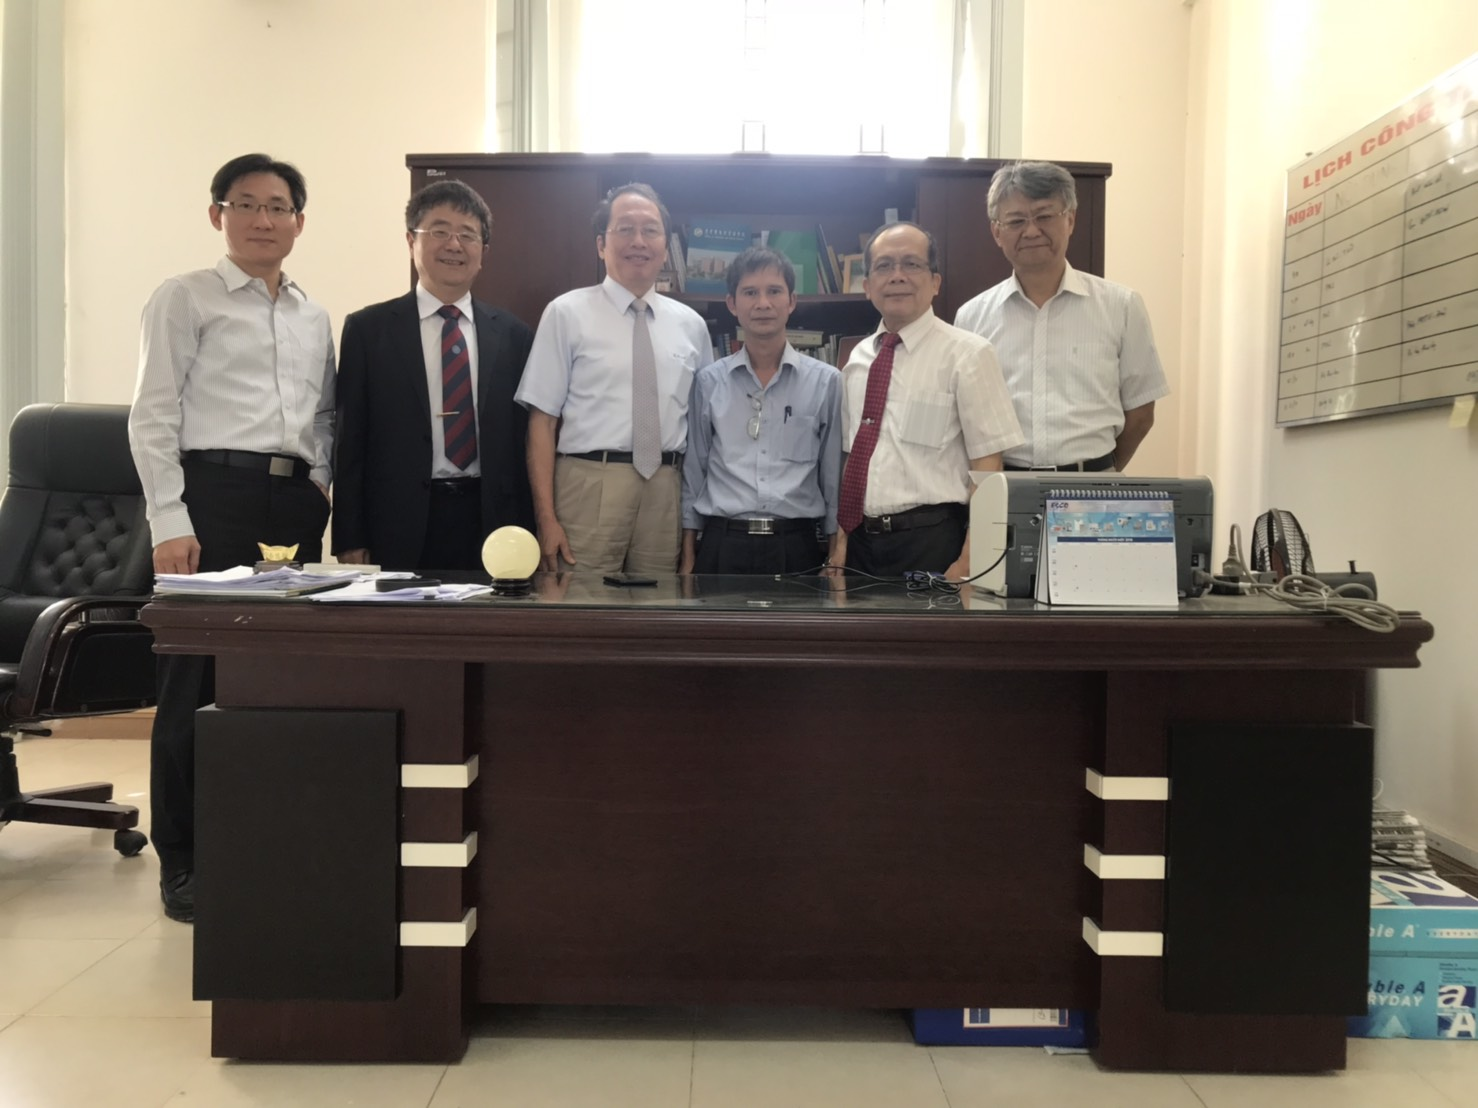 Dr. Ha Minh Thanh (third from right), Deputy Dean of PPRI, received Academician Shyi-Dong Yeh, Vice President Jenn-Wen Huang and Taiwan representatives.